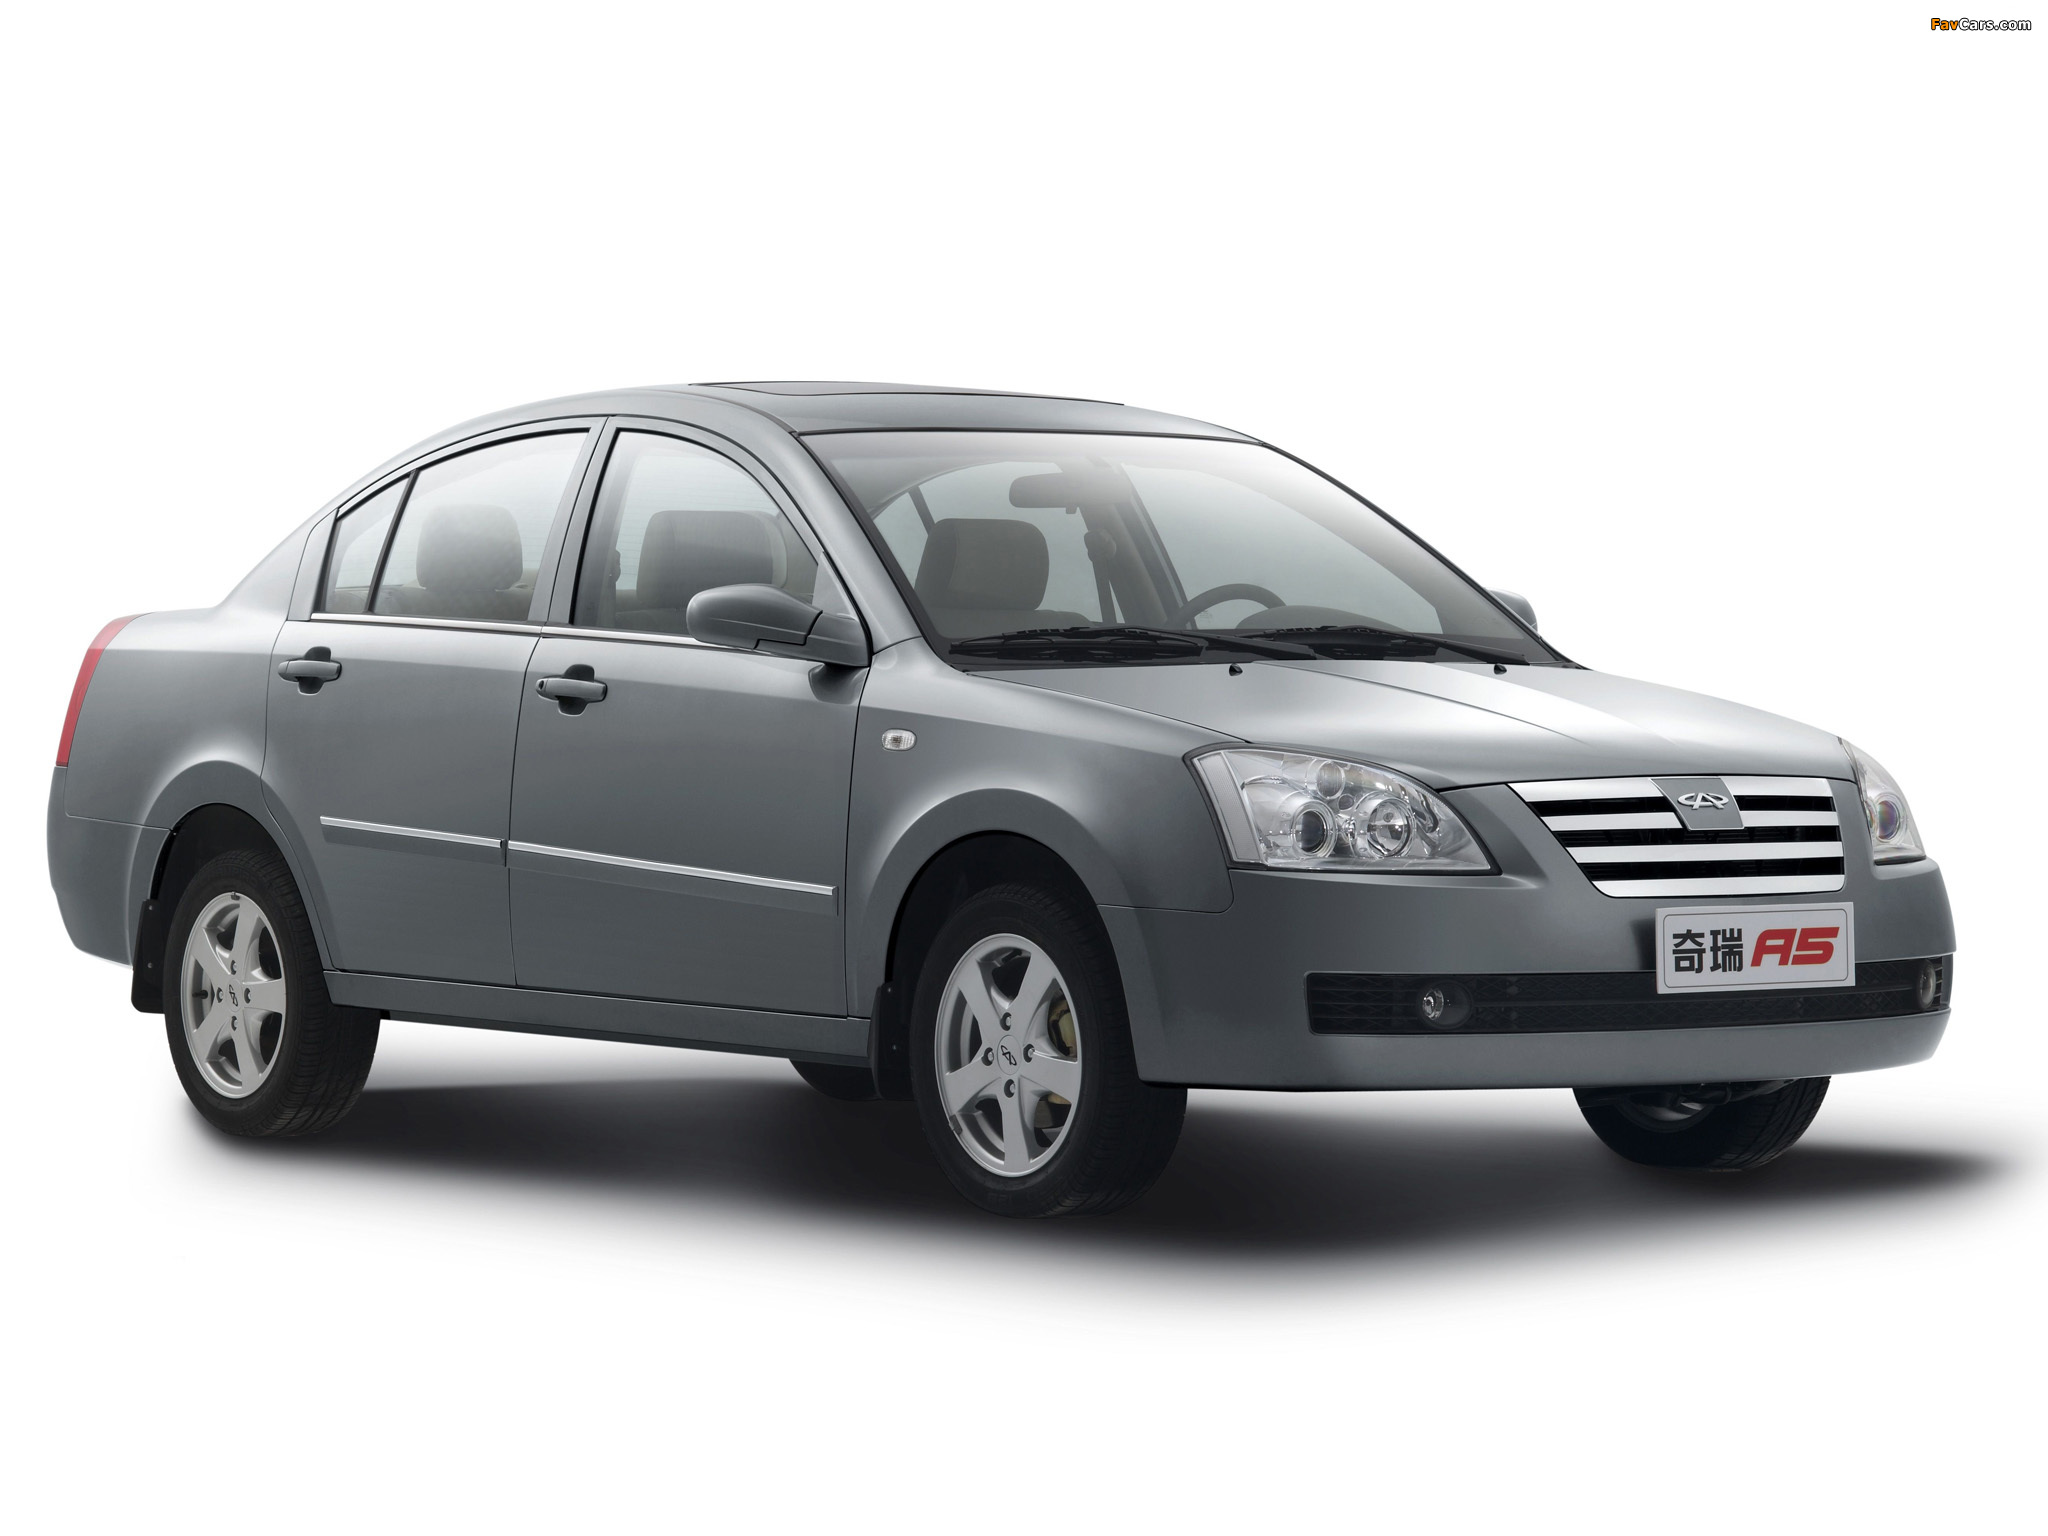 Pictures of chery a5 #2